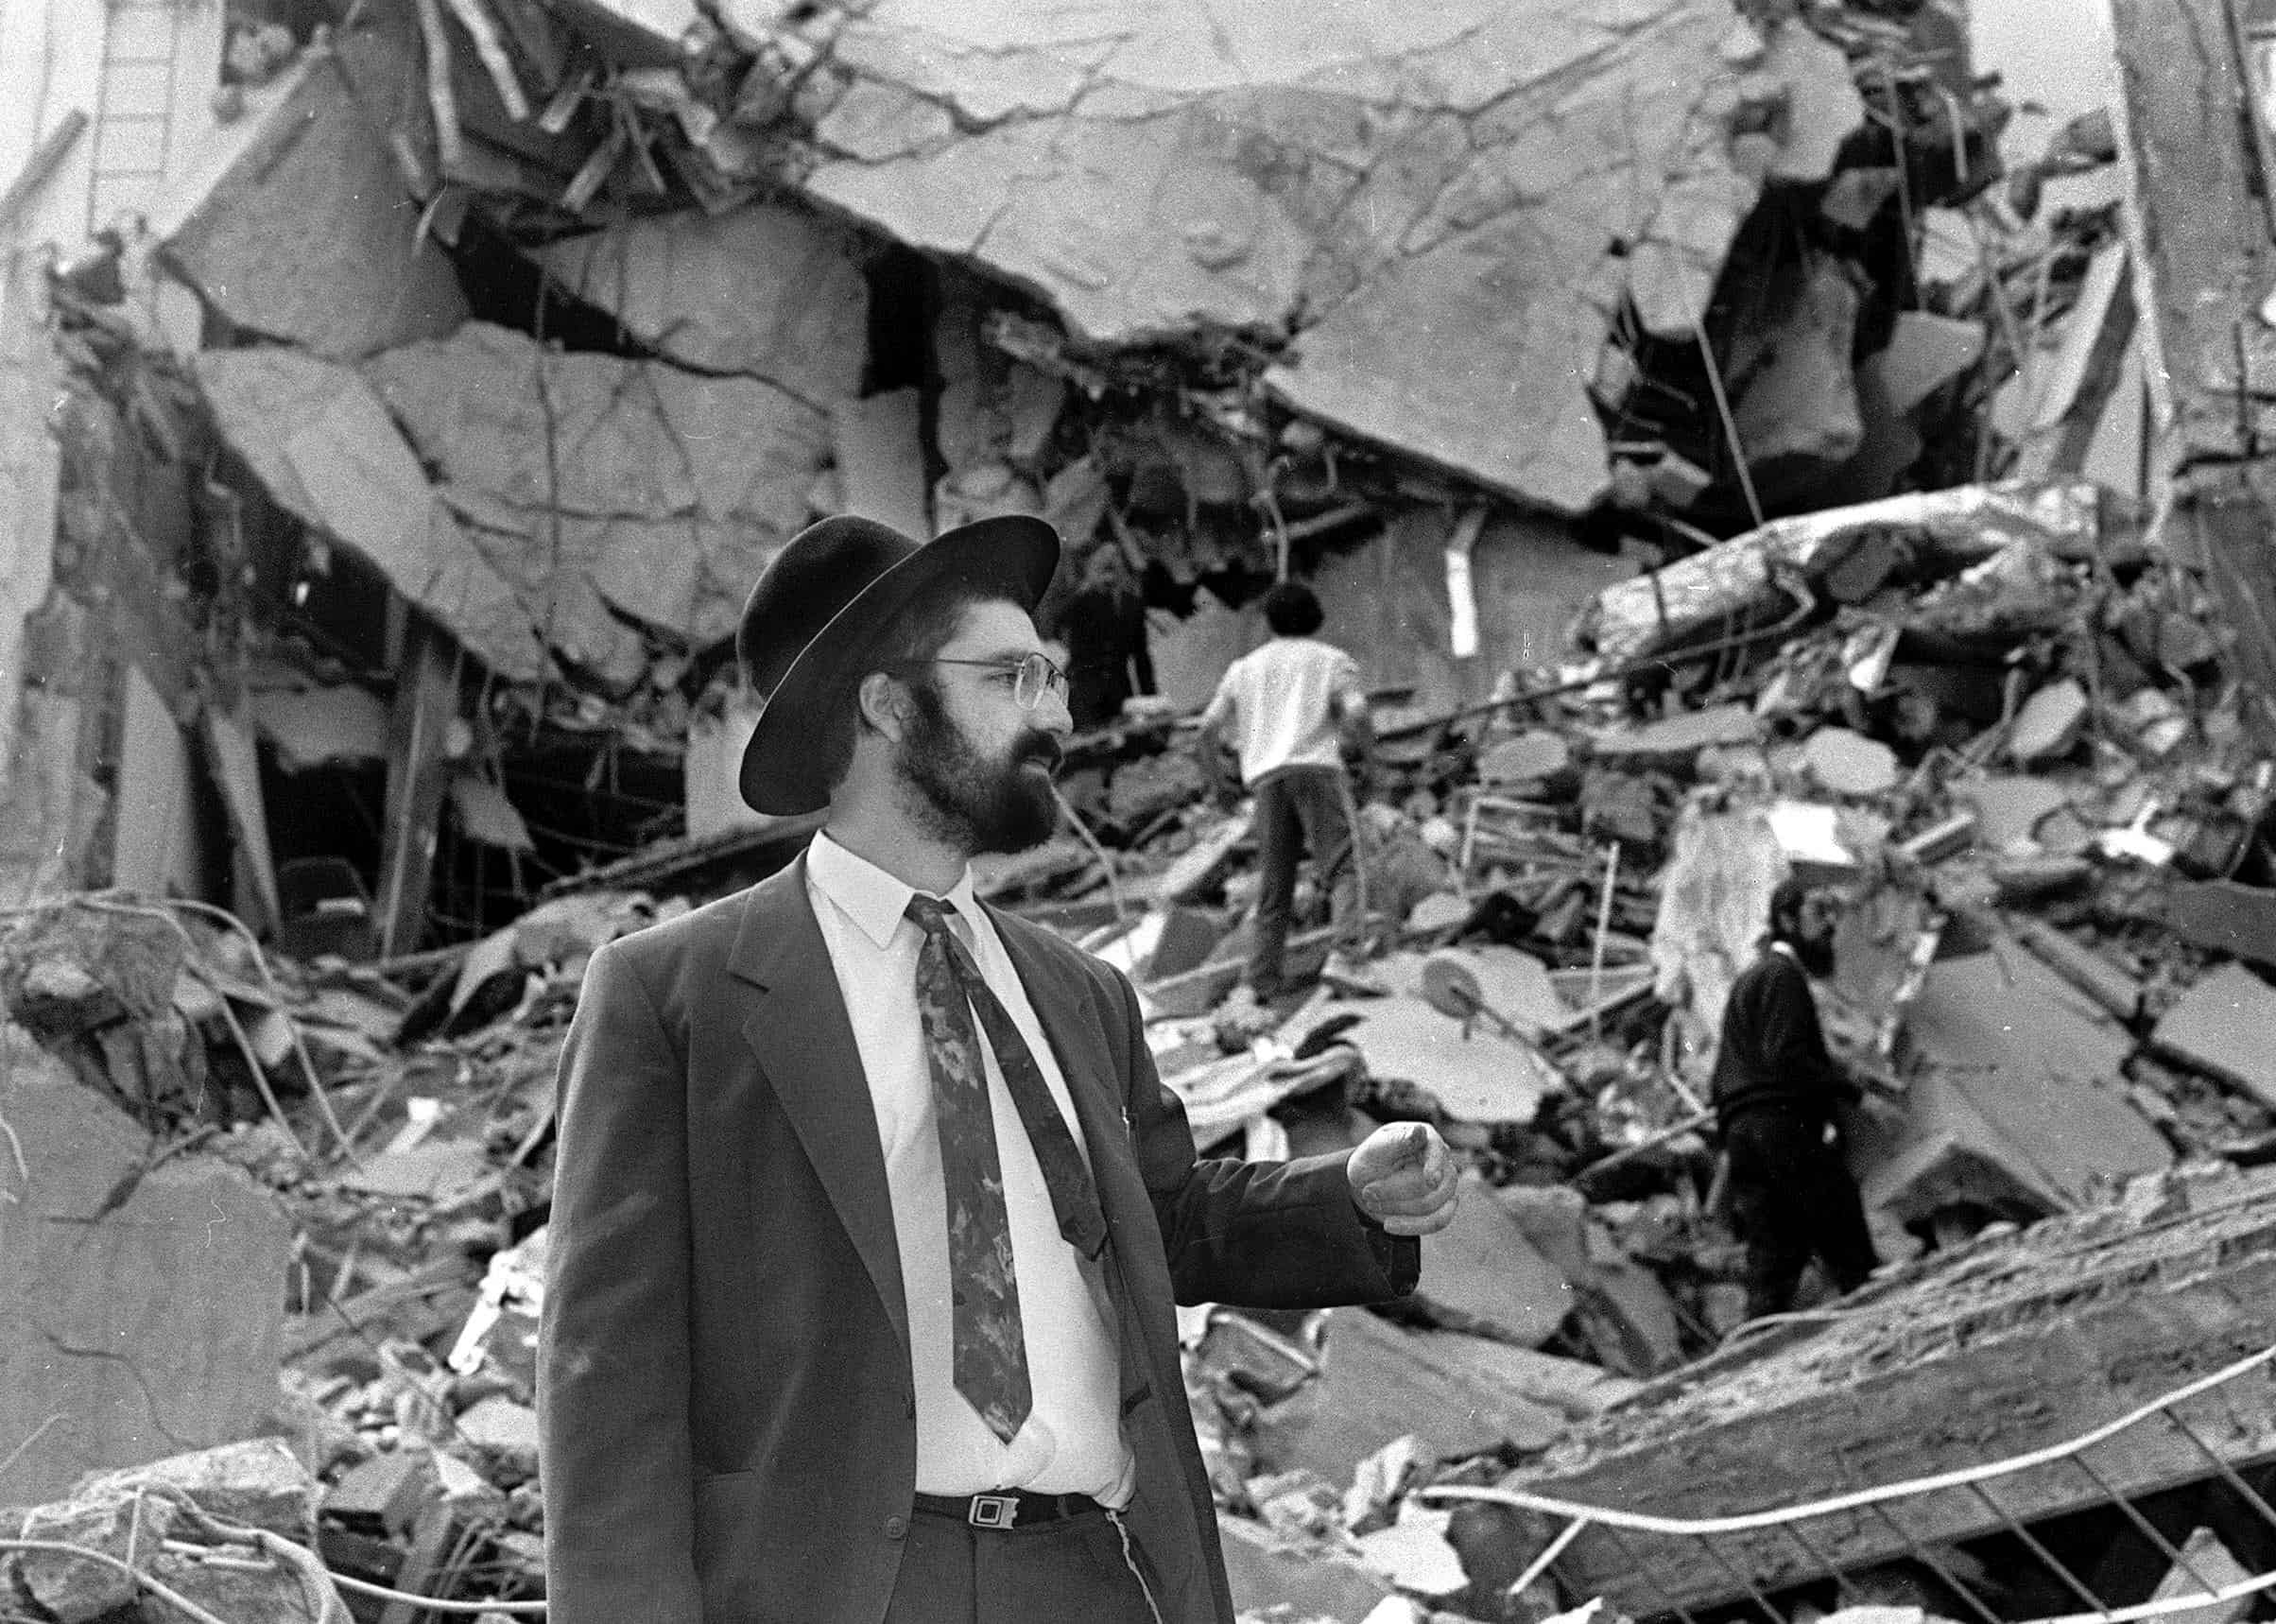 A man walks over rubble after a bomb exploded at the Argentine Israelite Mutual Association (AMIA) in Buenos Aires, on July 18, 1994, killing 85 people and injuring 300 others in the worst attack of its kind in the South American country.